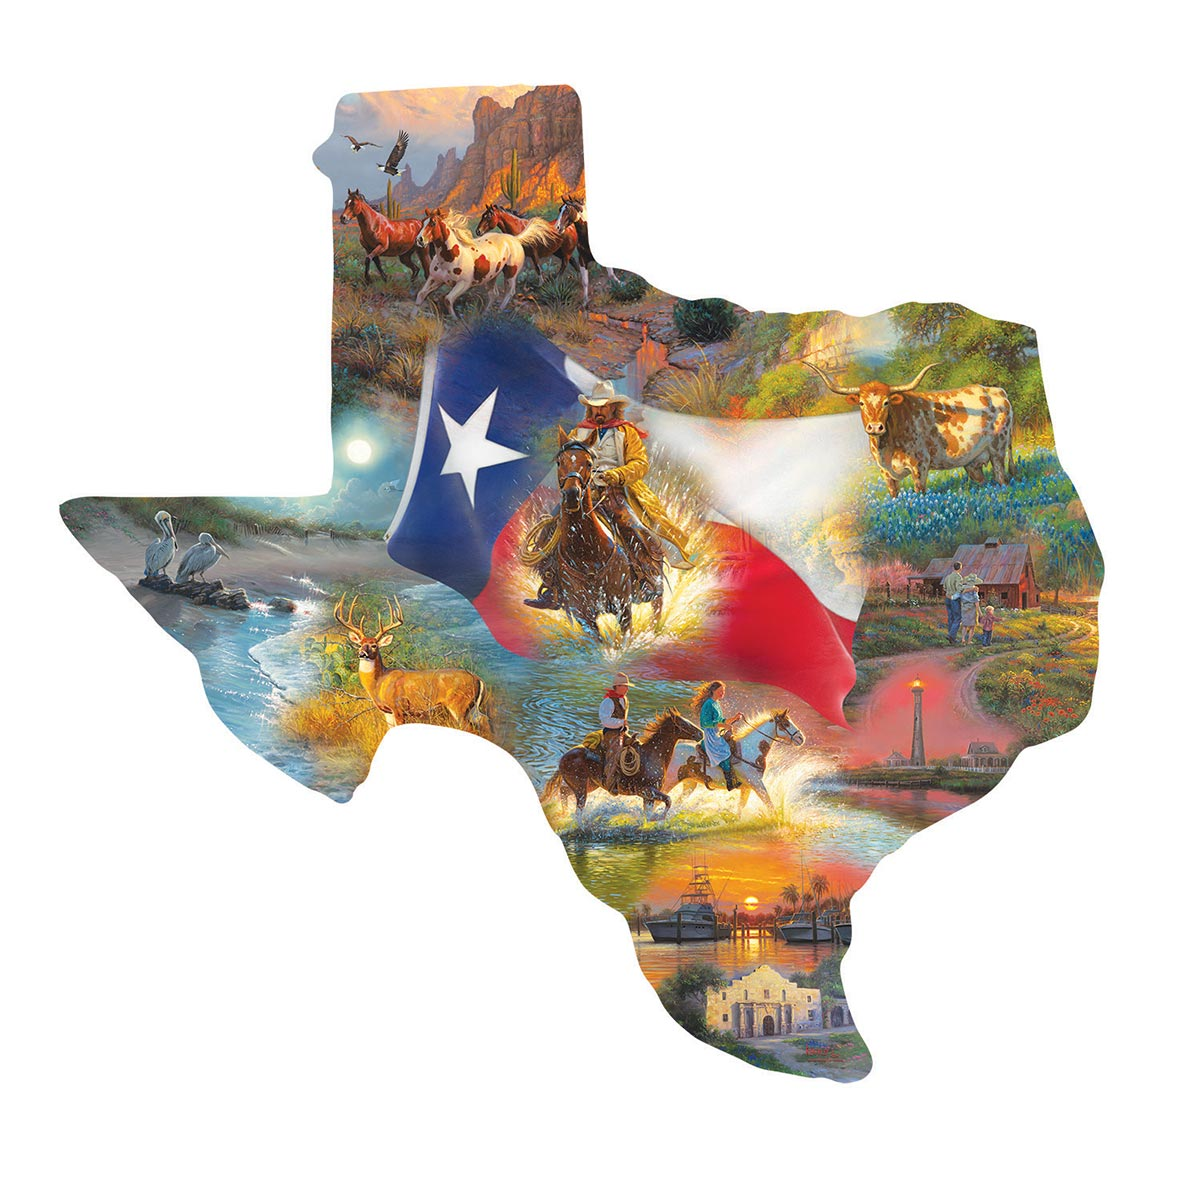 Images of Texas Collage Shaped Puzzle